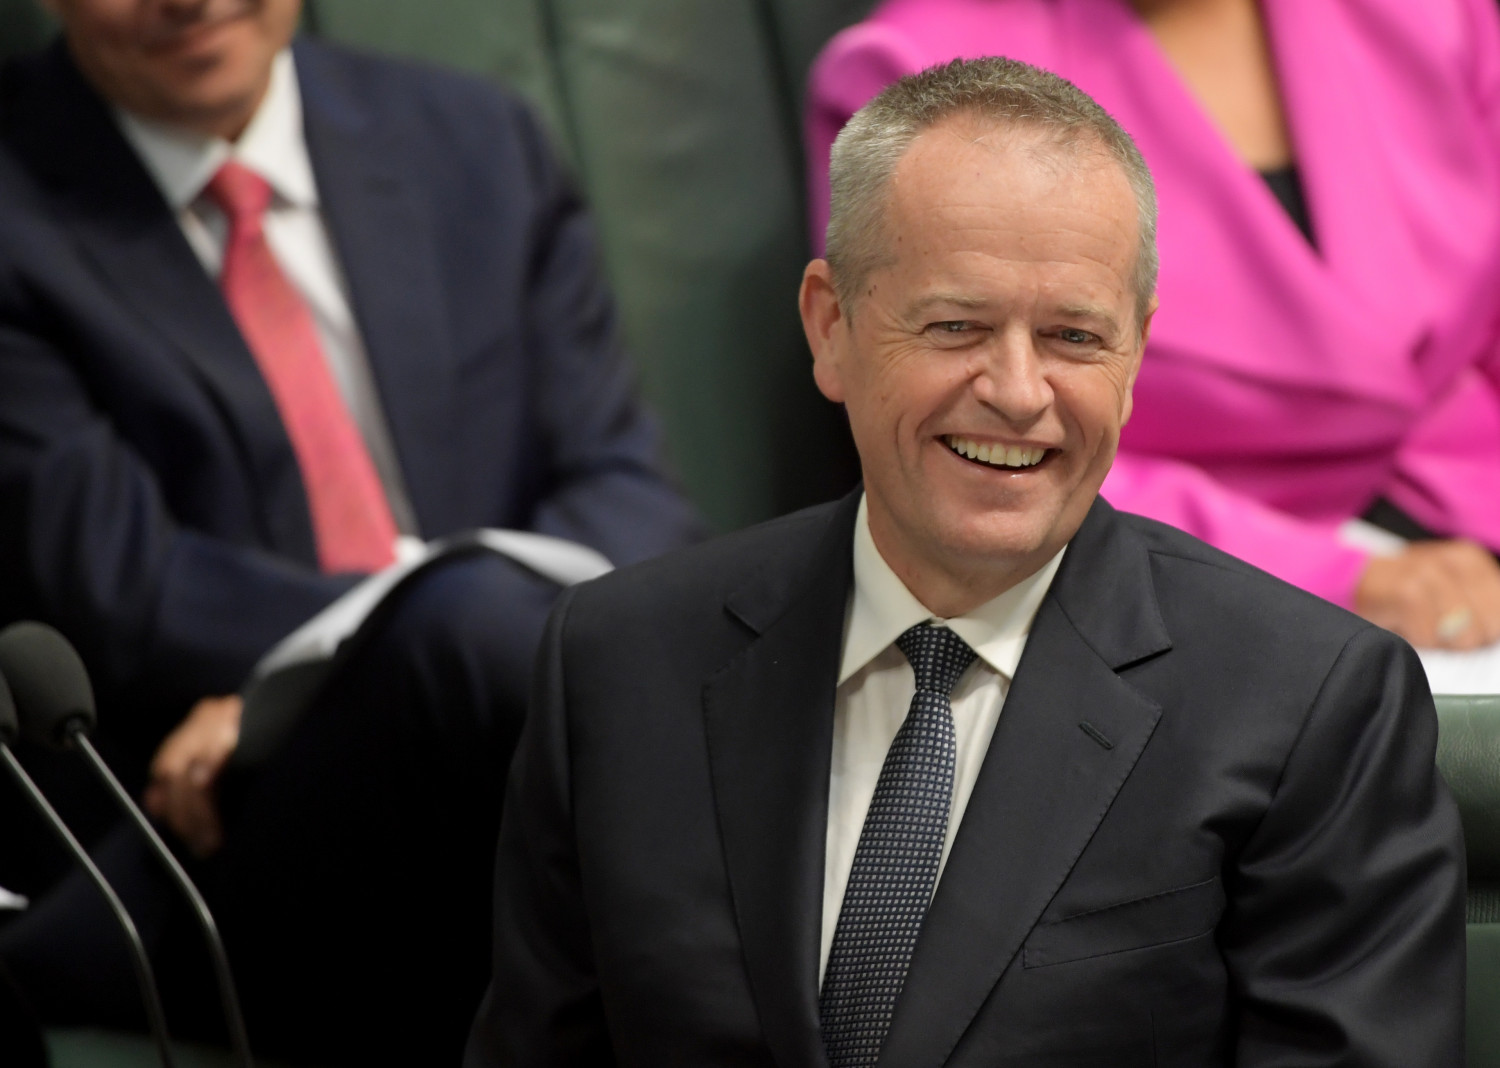 Opposition Leader Bill Shorten during Question Time